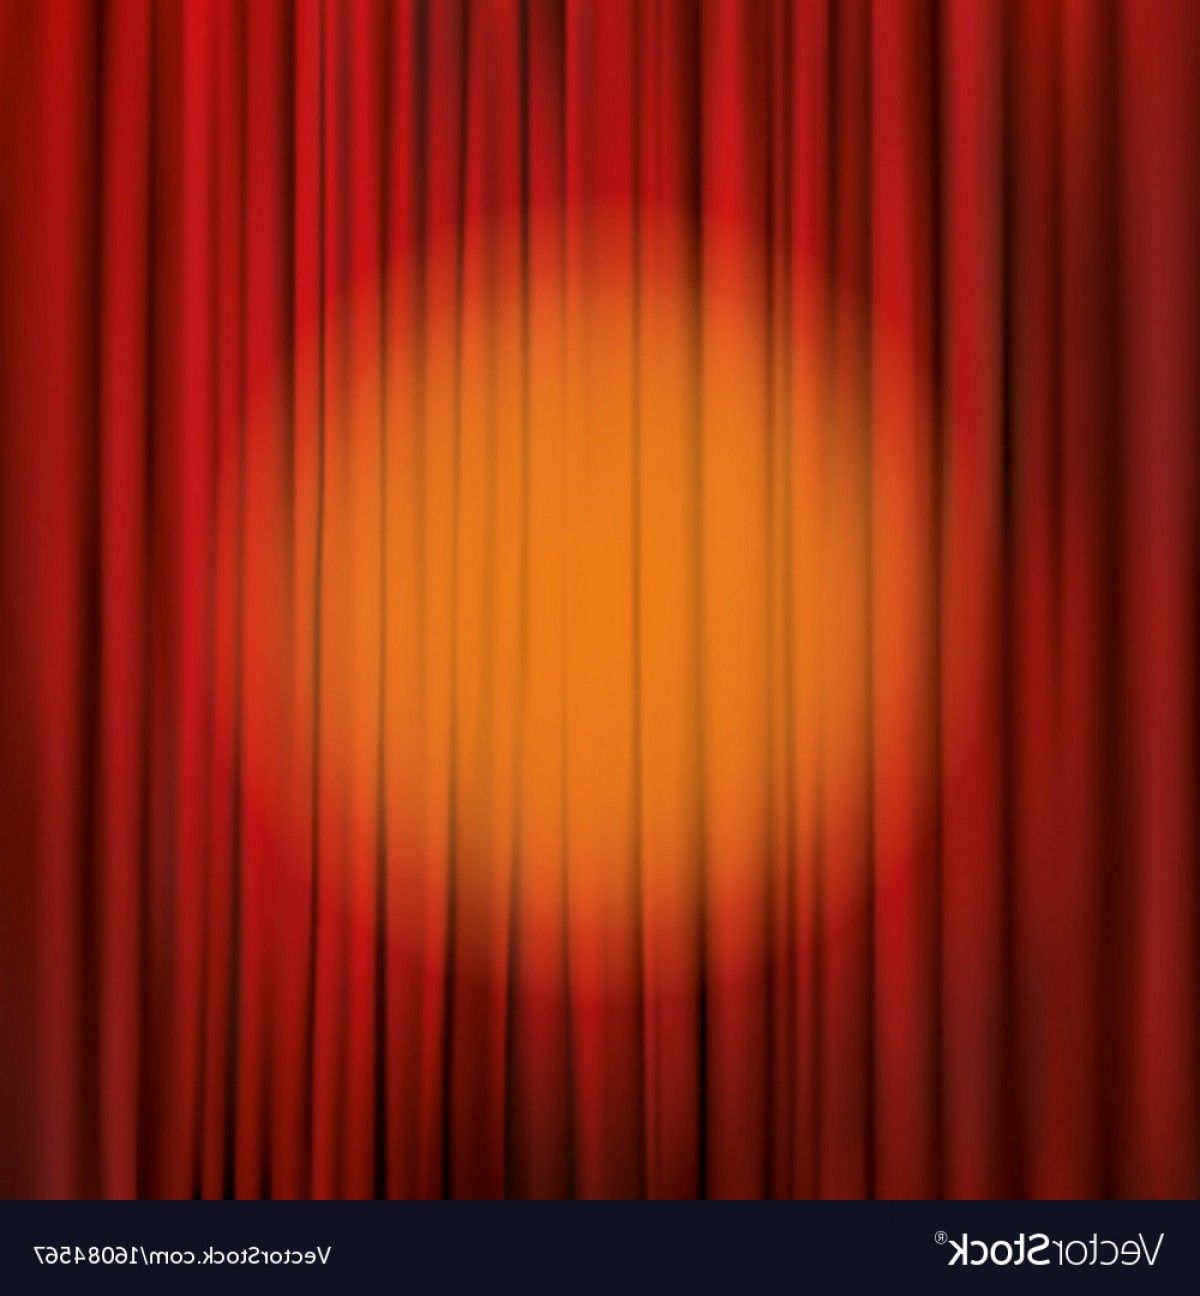 Stage Curtain Vector: Spotlight On A Red Stage Curtain Vector